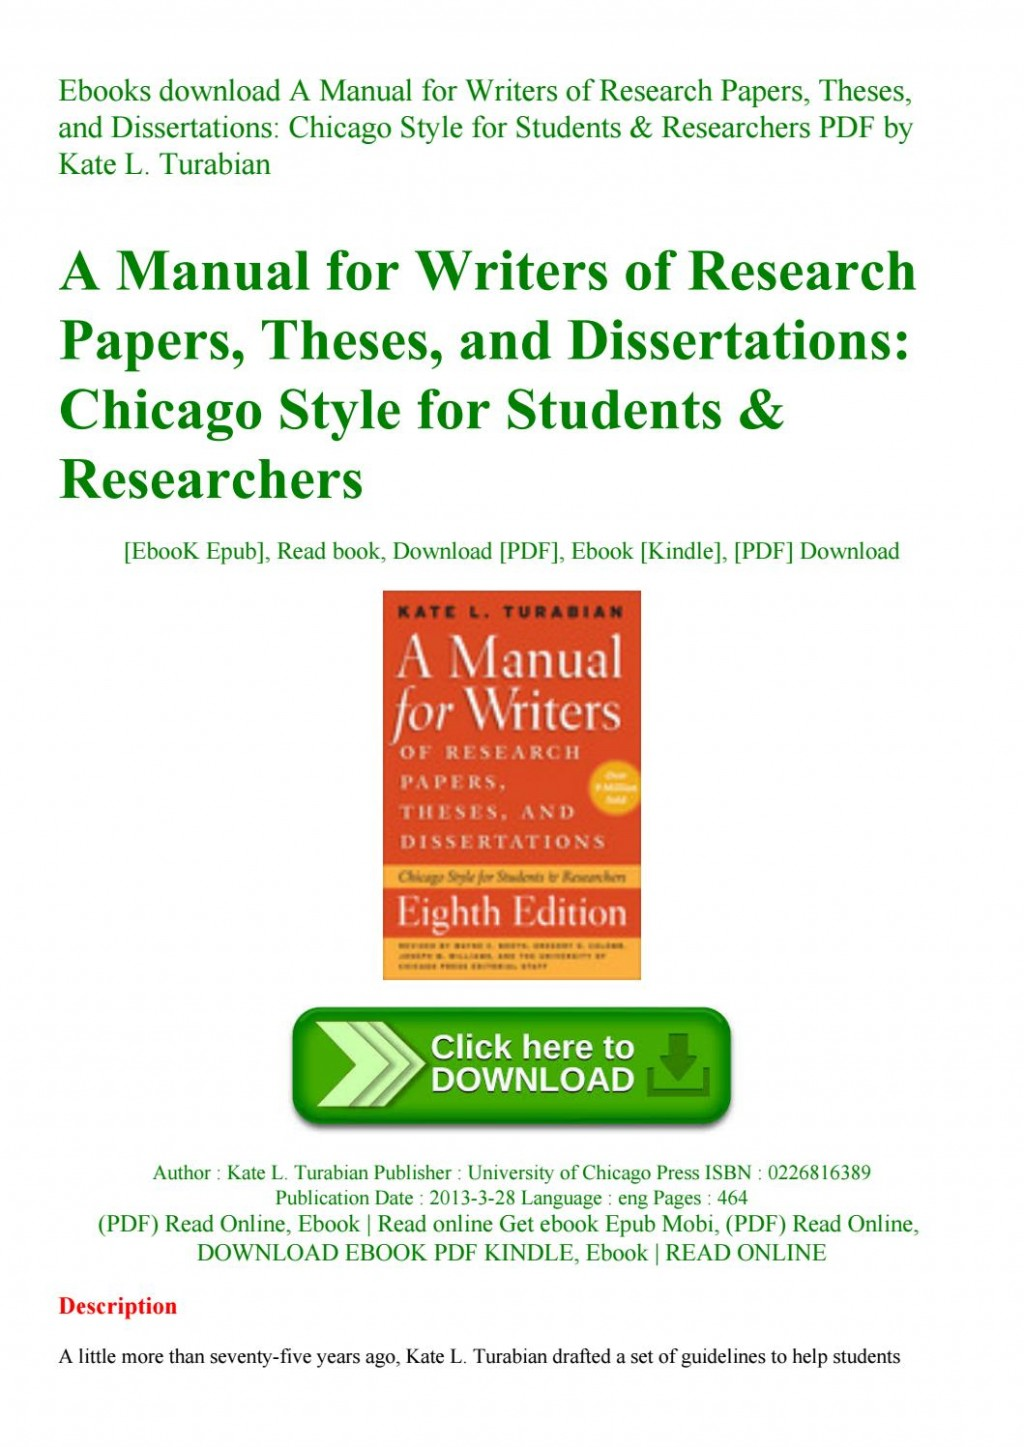 018 Page 1 Research Paper Manual For Writers Of Papers Theses And Sensational A Dissertations Ed. 8 Turabian Ninth Edition Large